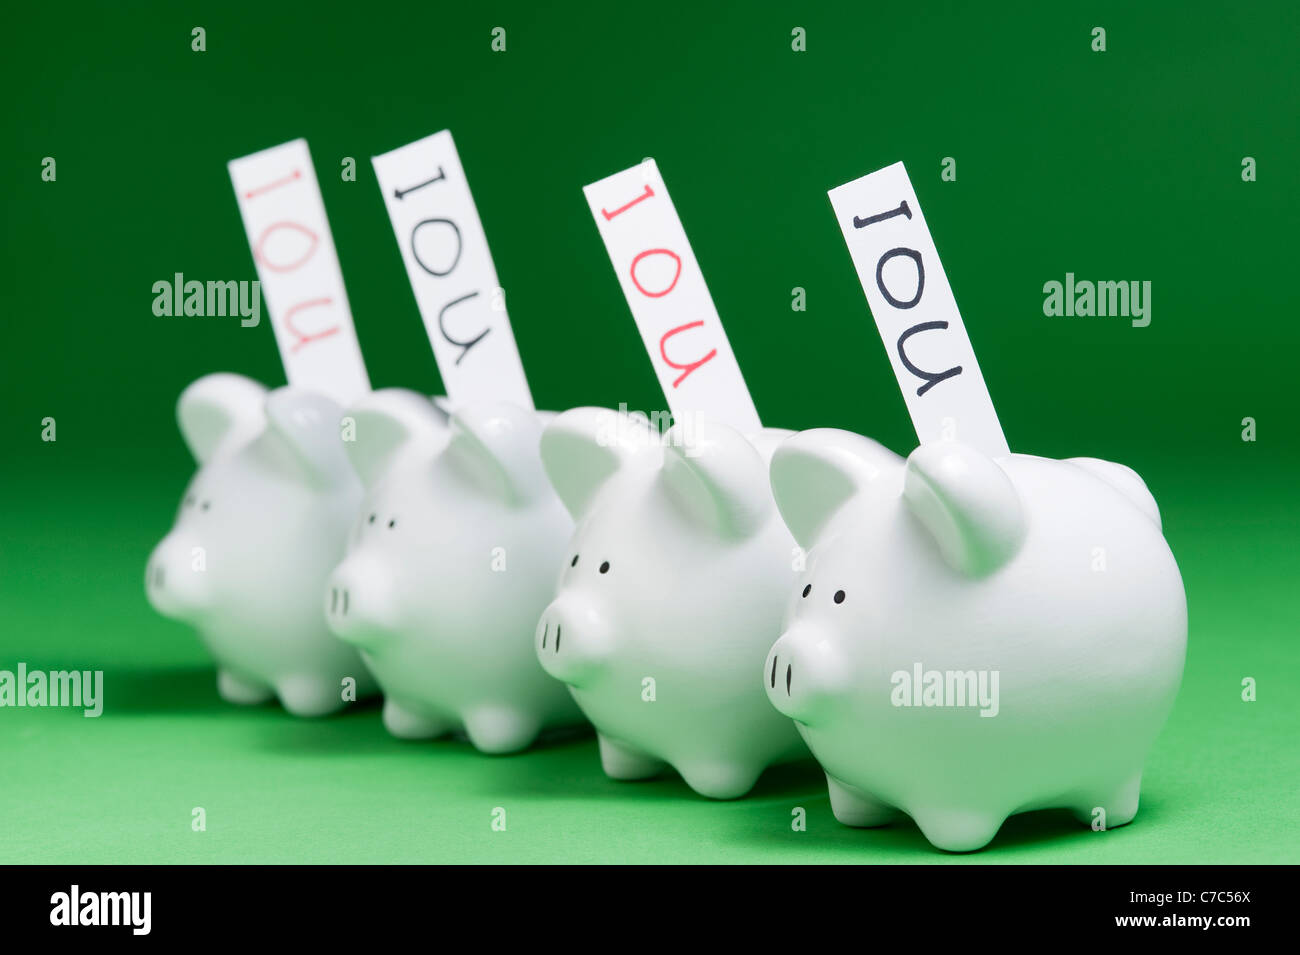 Group of piggy banks with IOU's coming out of coin slots Stock Photo